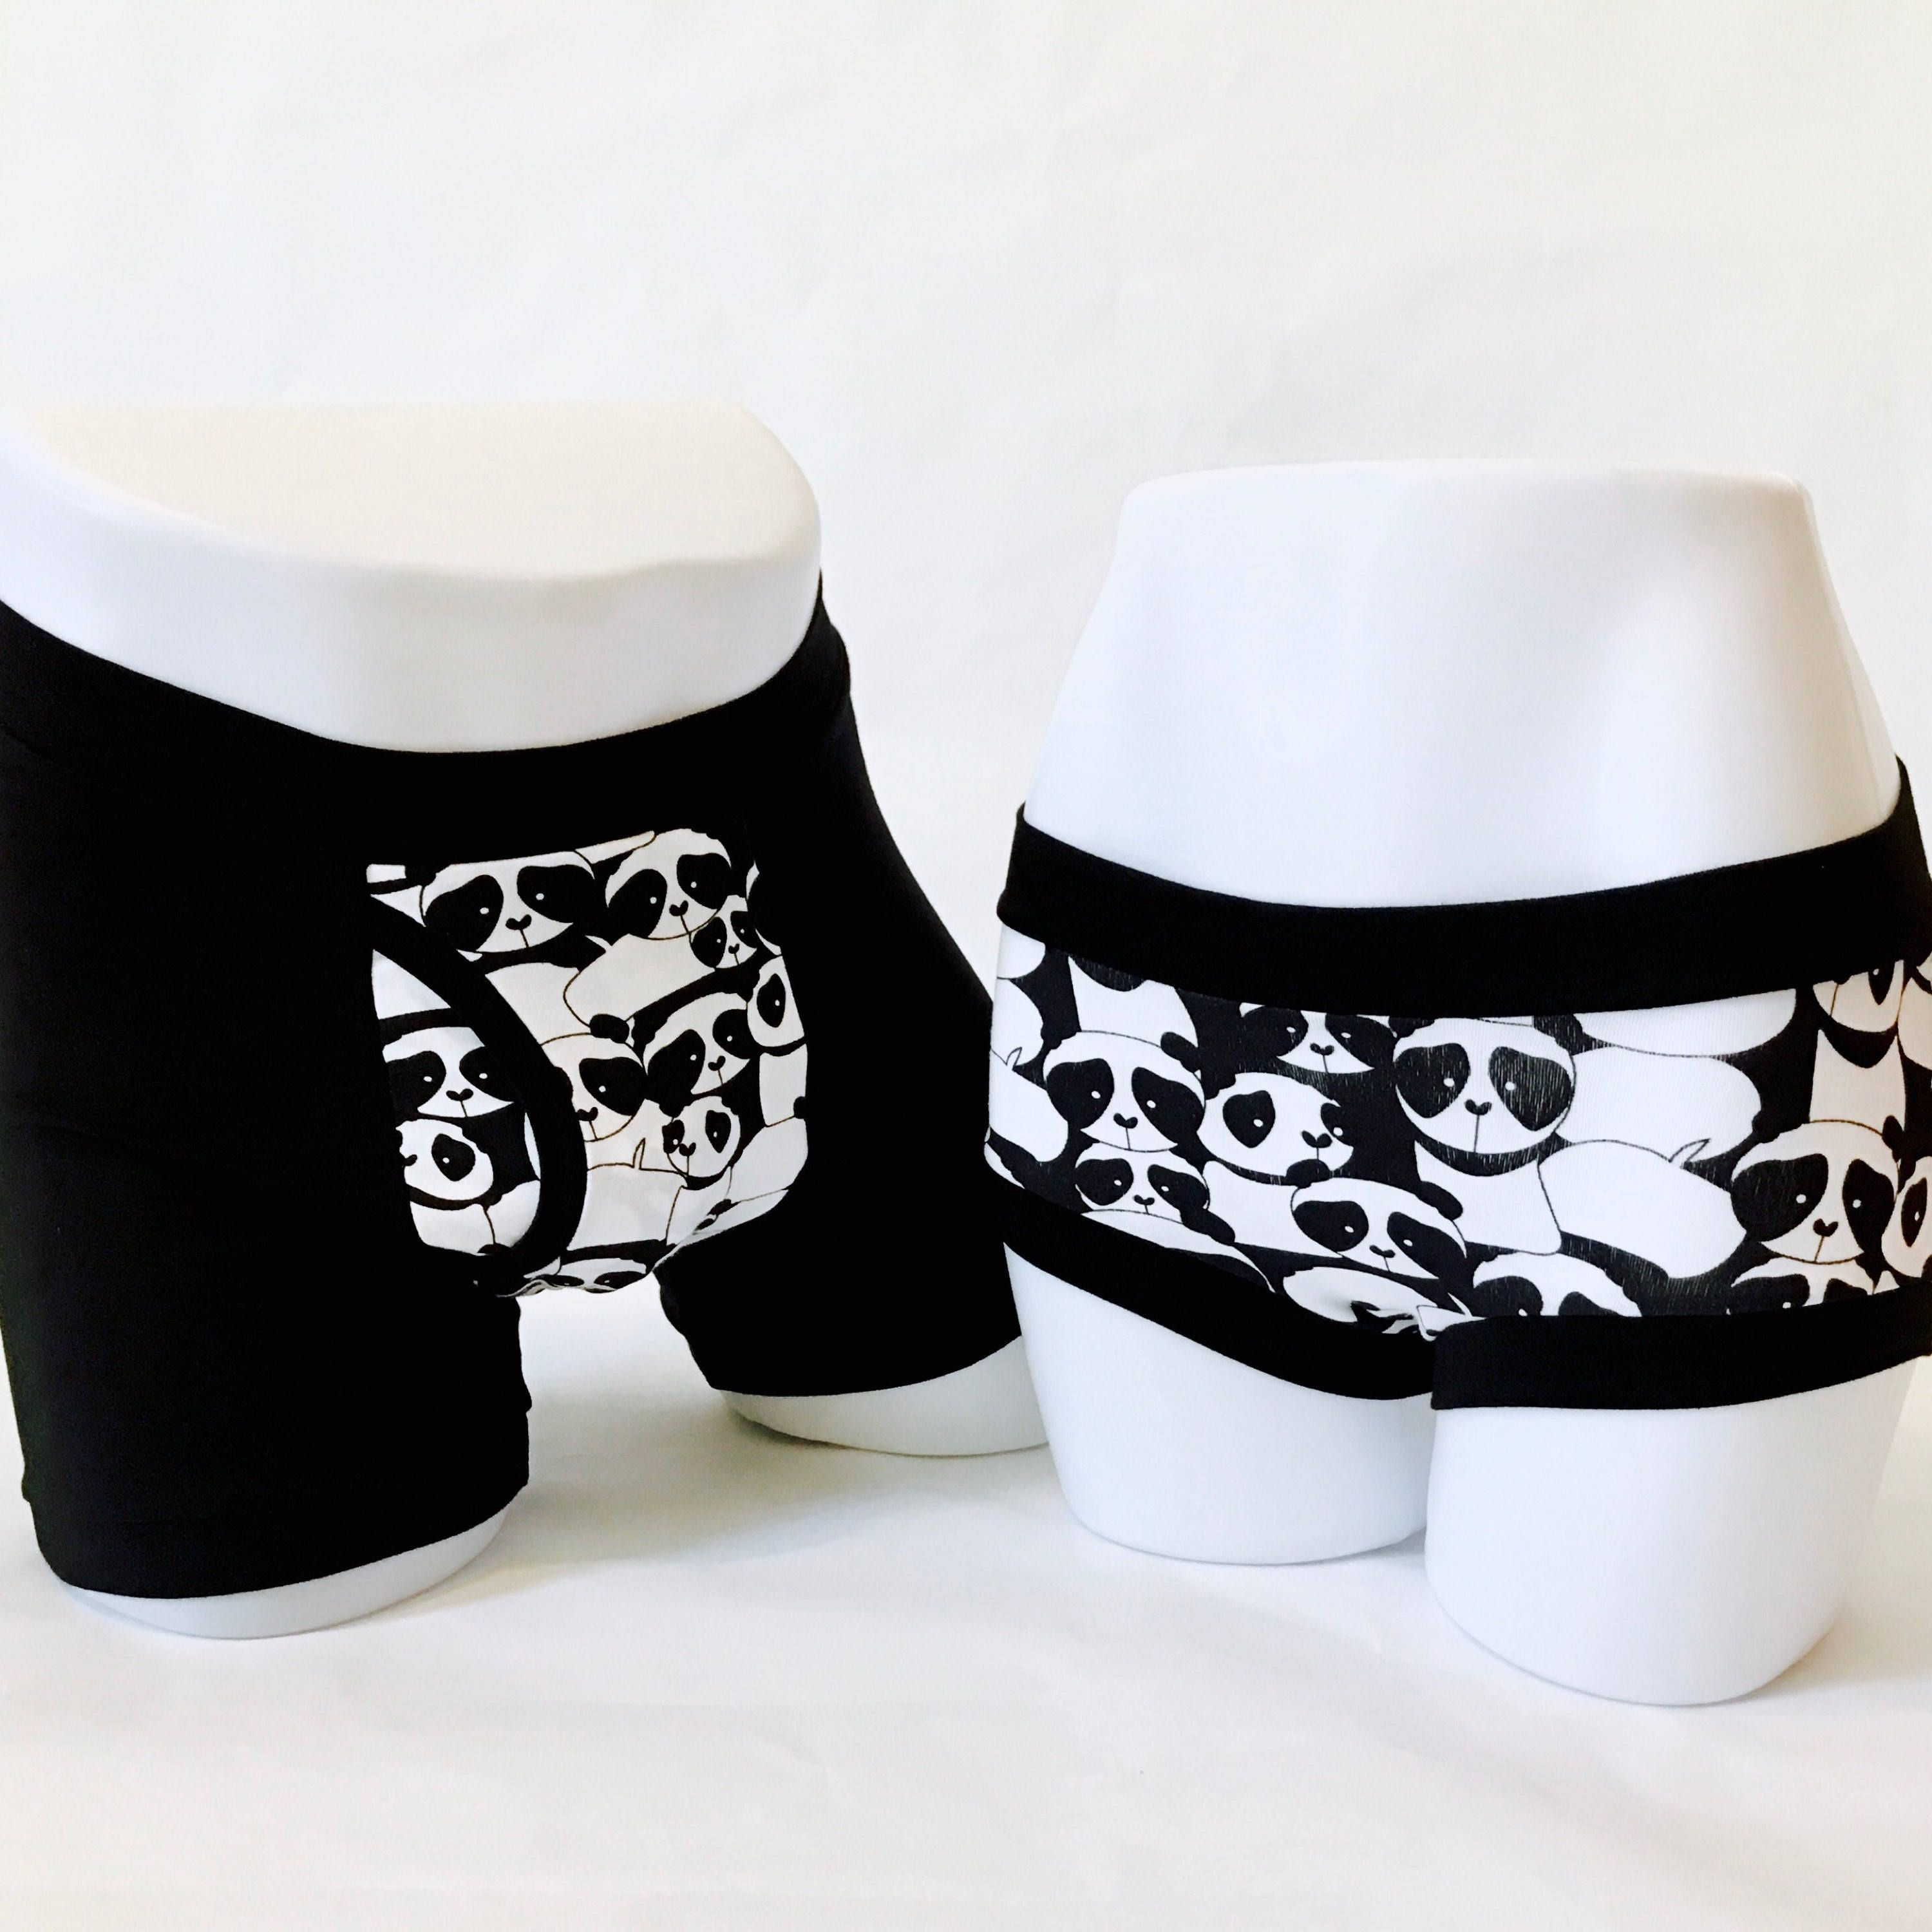 aae64e0e8d6f Valentine's Day gift, Couples underwear, his and hers gift, geek underwear,  matching